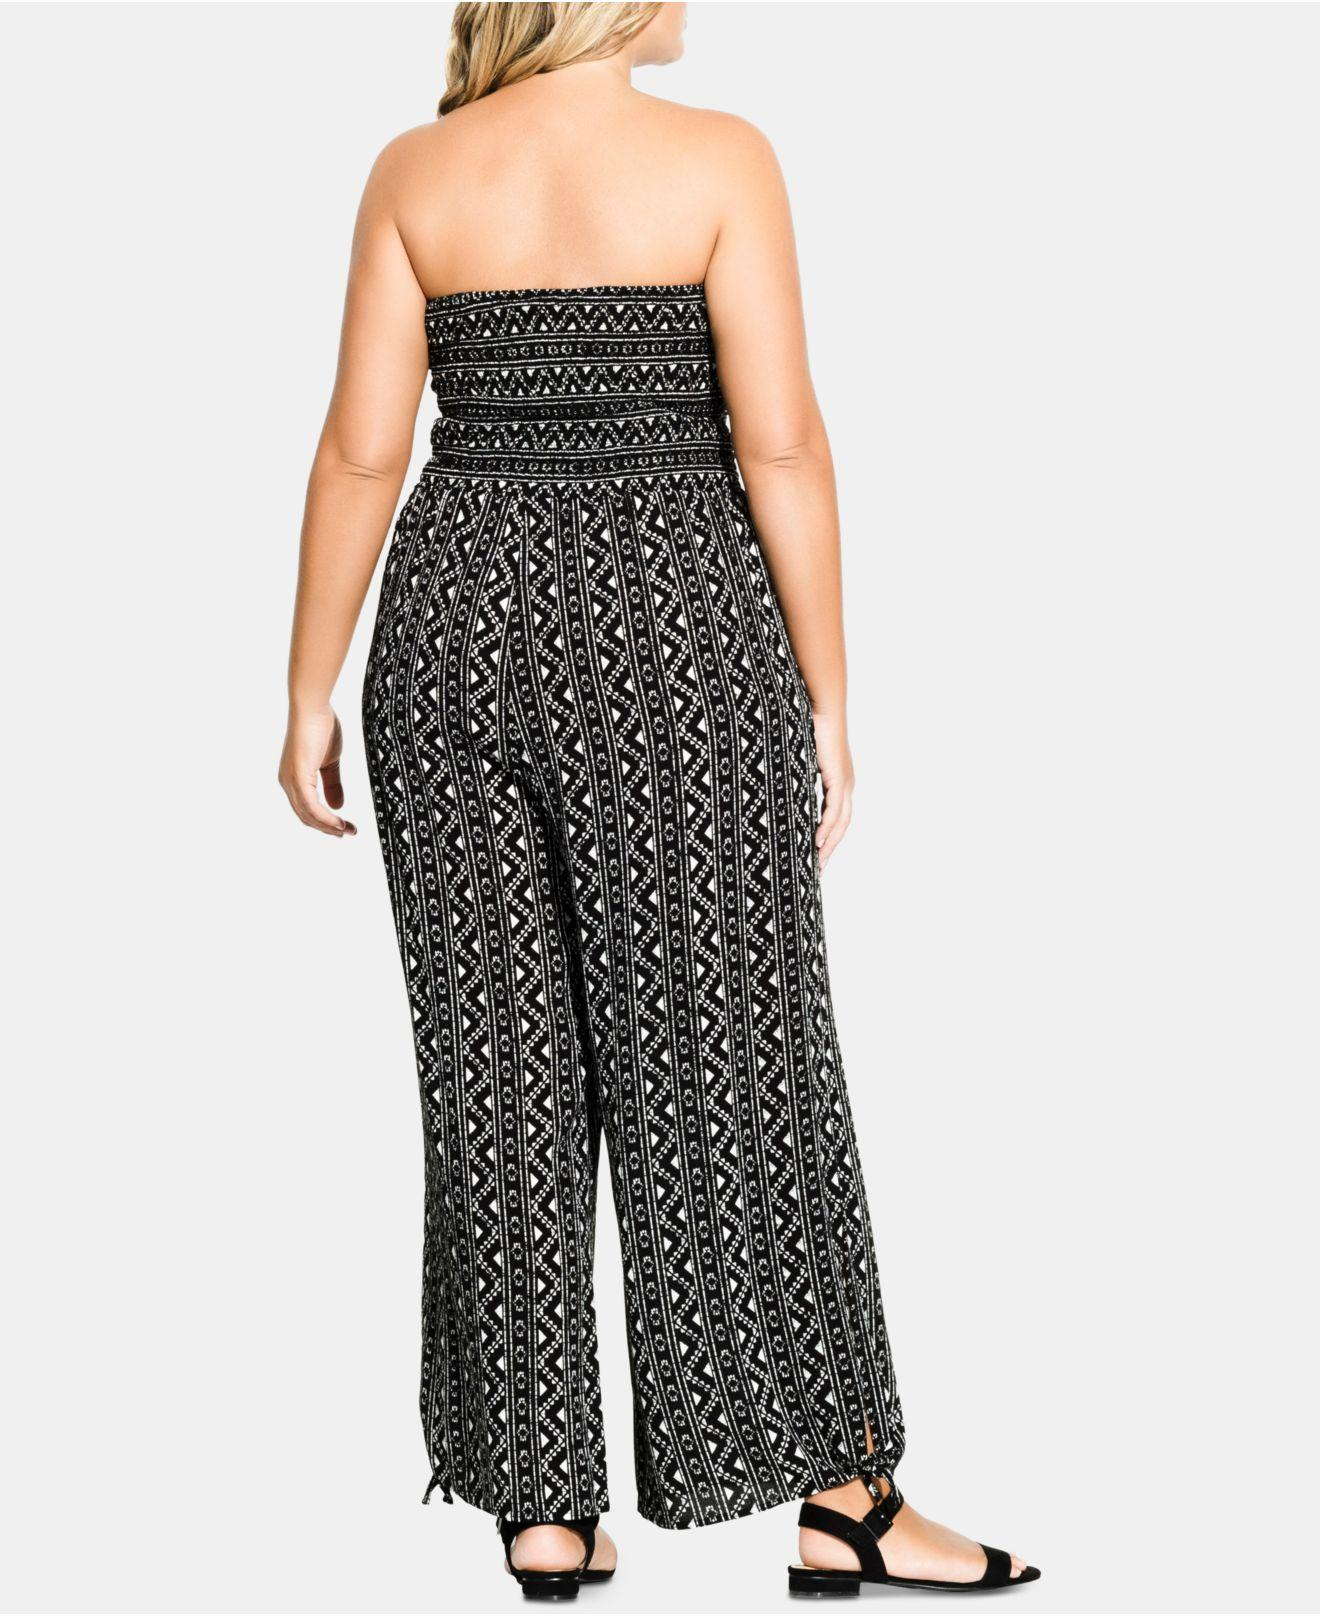 79320a7c5d4 Lyst - City Chic Trendy Plus Size Printed Strapless Jumpsuit in Black